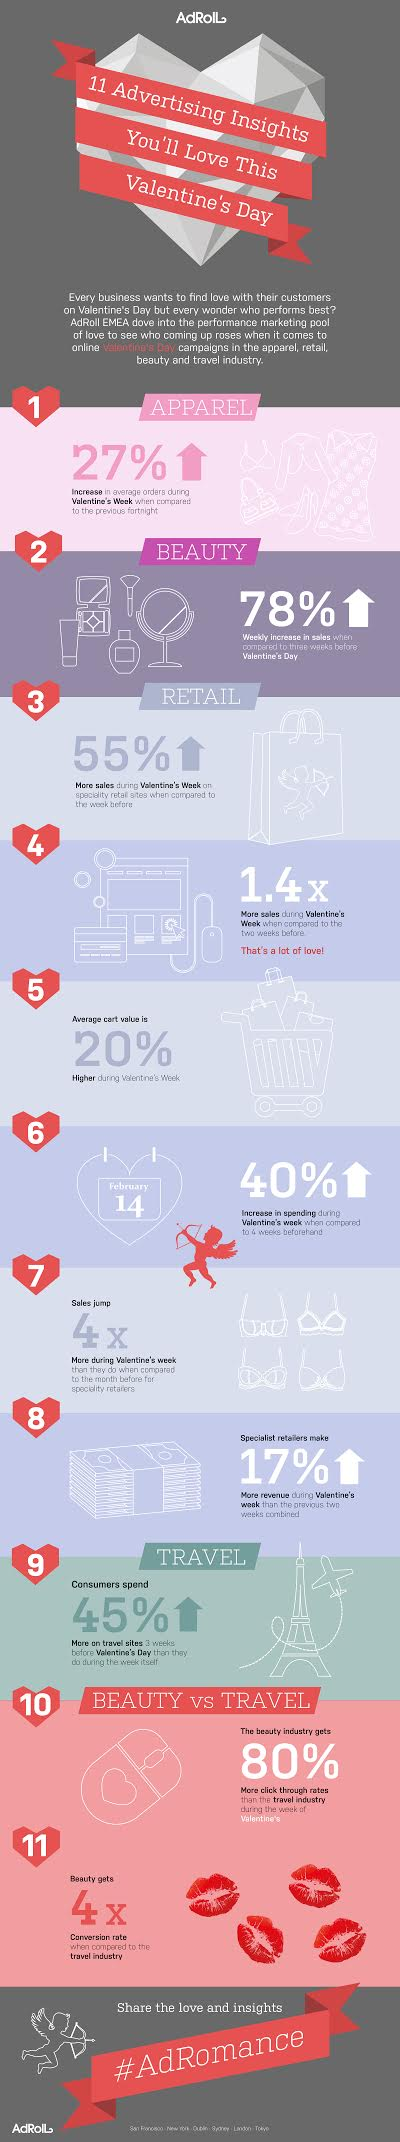 Infographic: 1.4 Times More Retail Sales Made in Valentine's Week